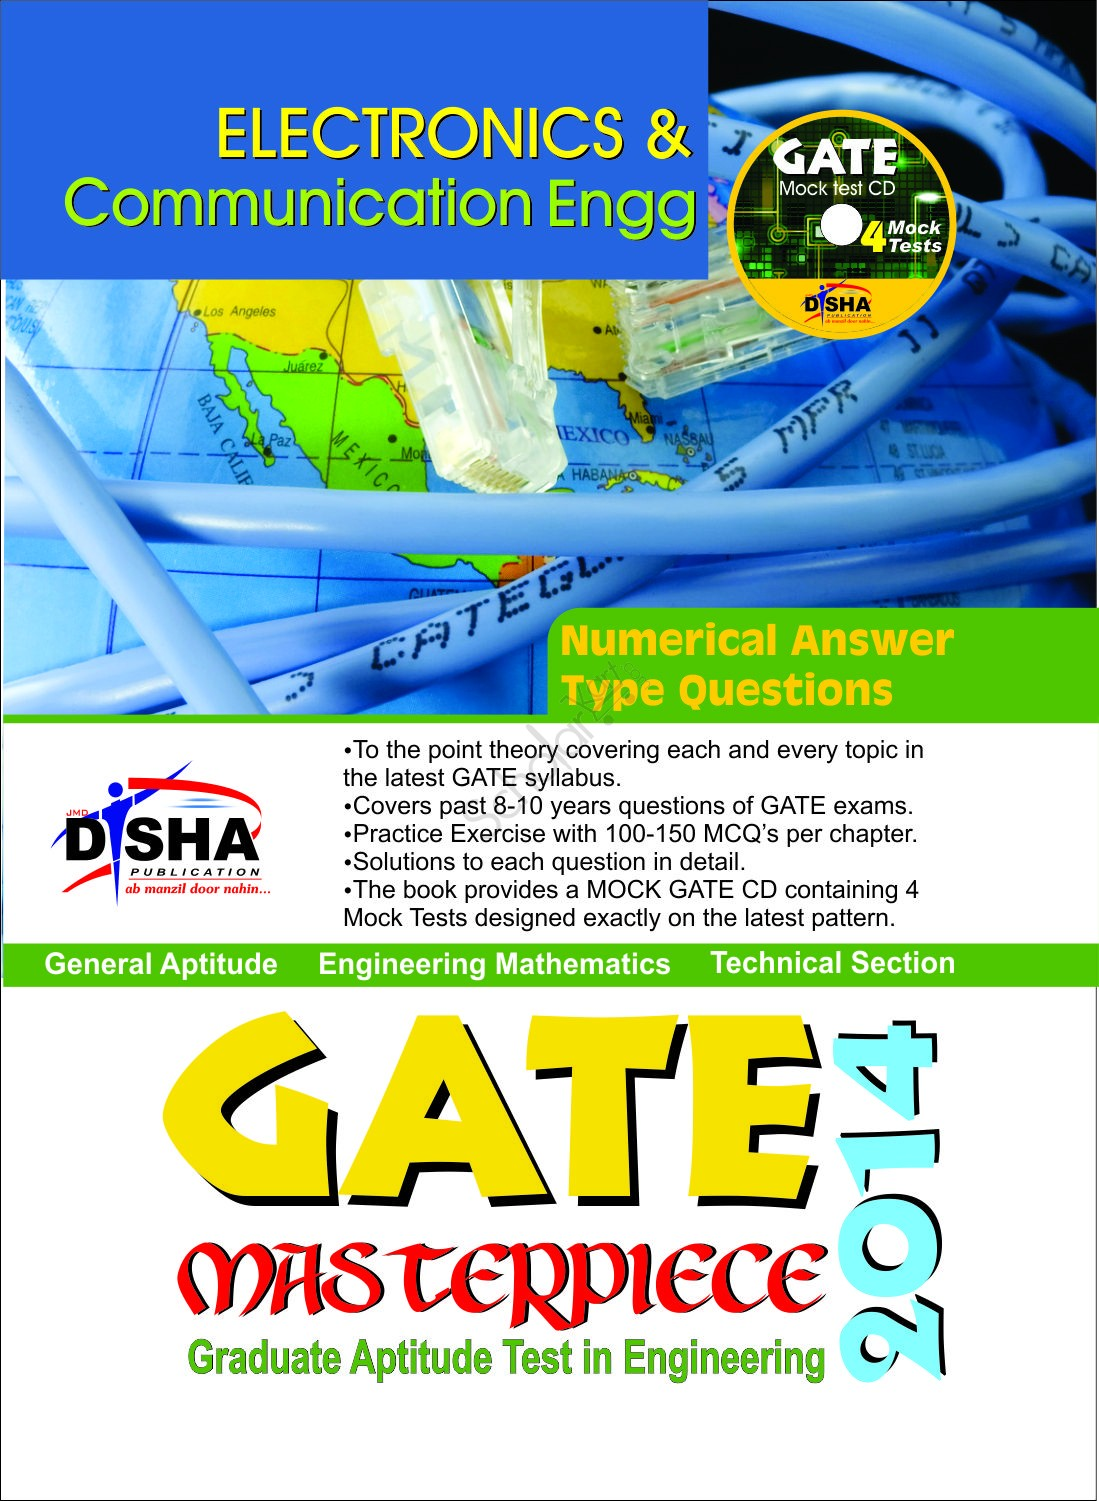 Buy GATE exam book with 4 Mock Test CD at Rs.319